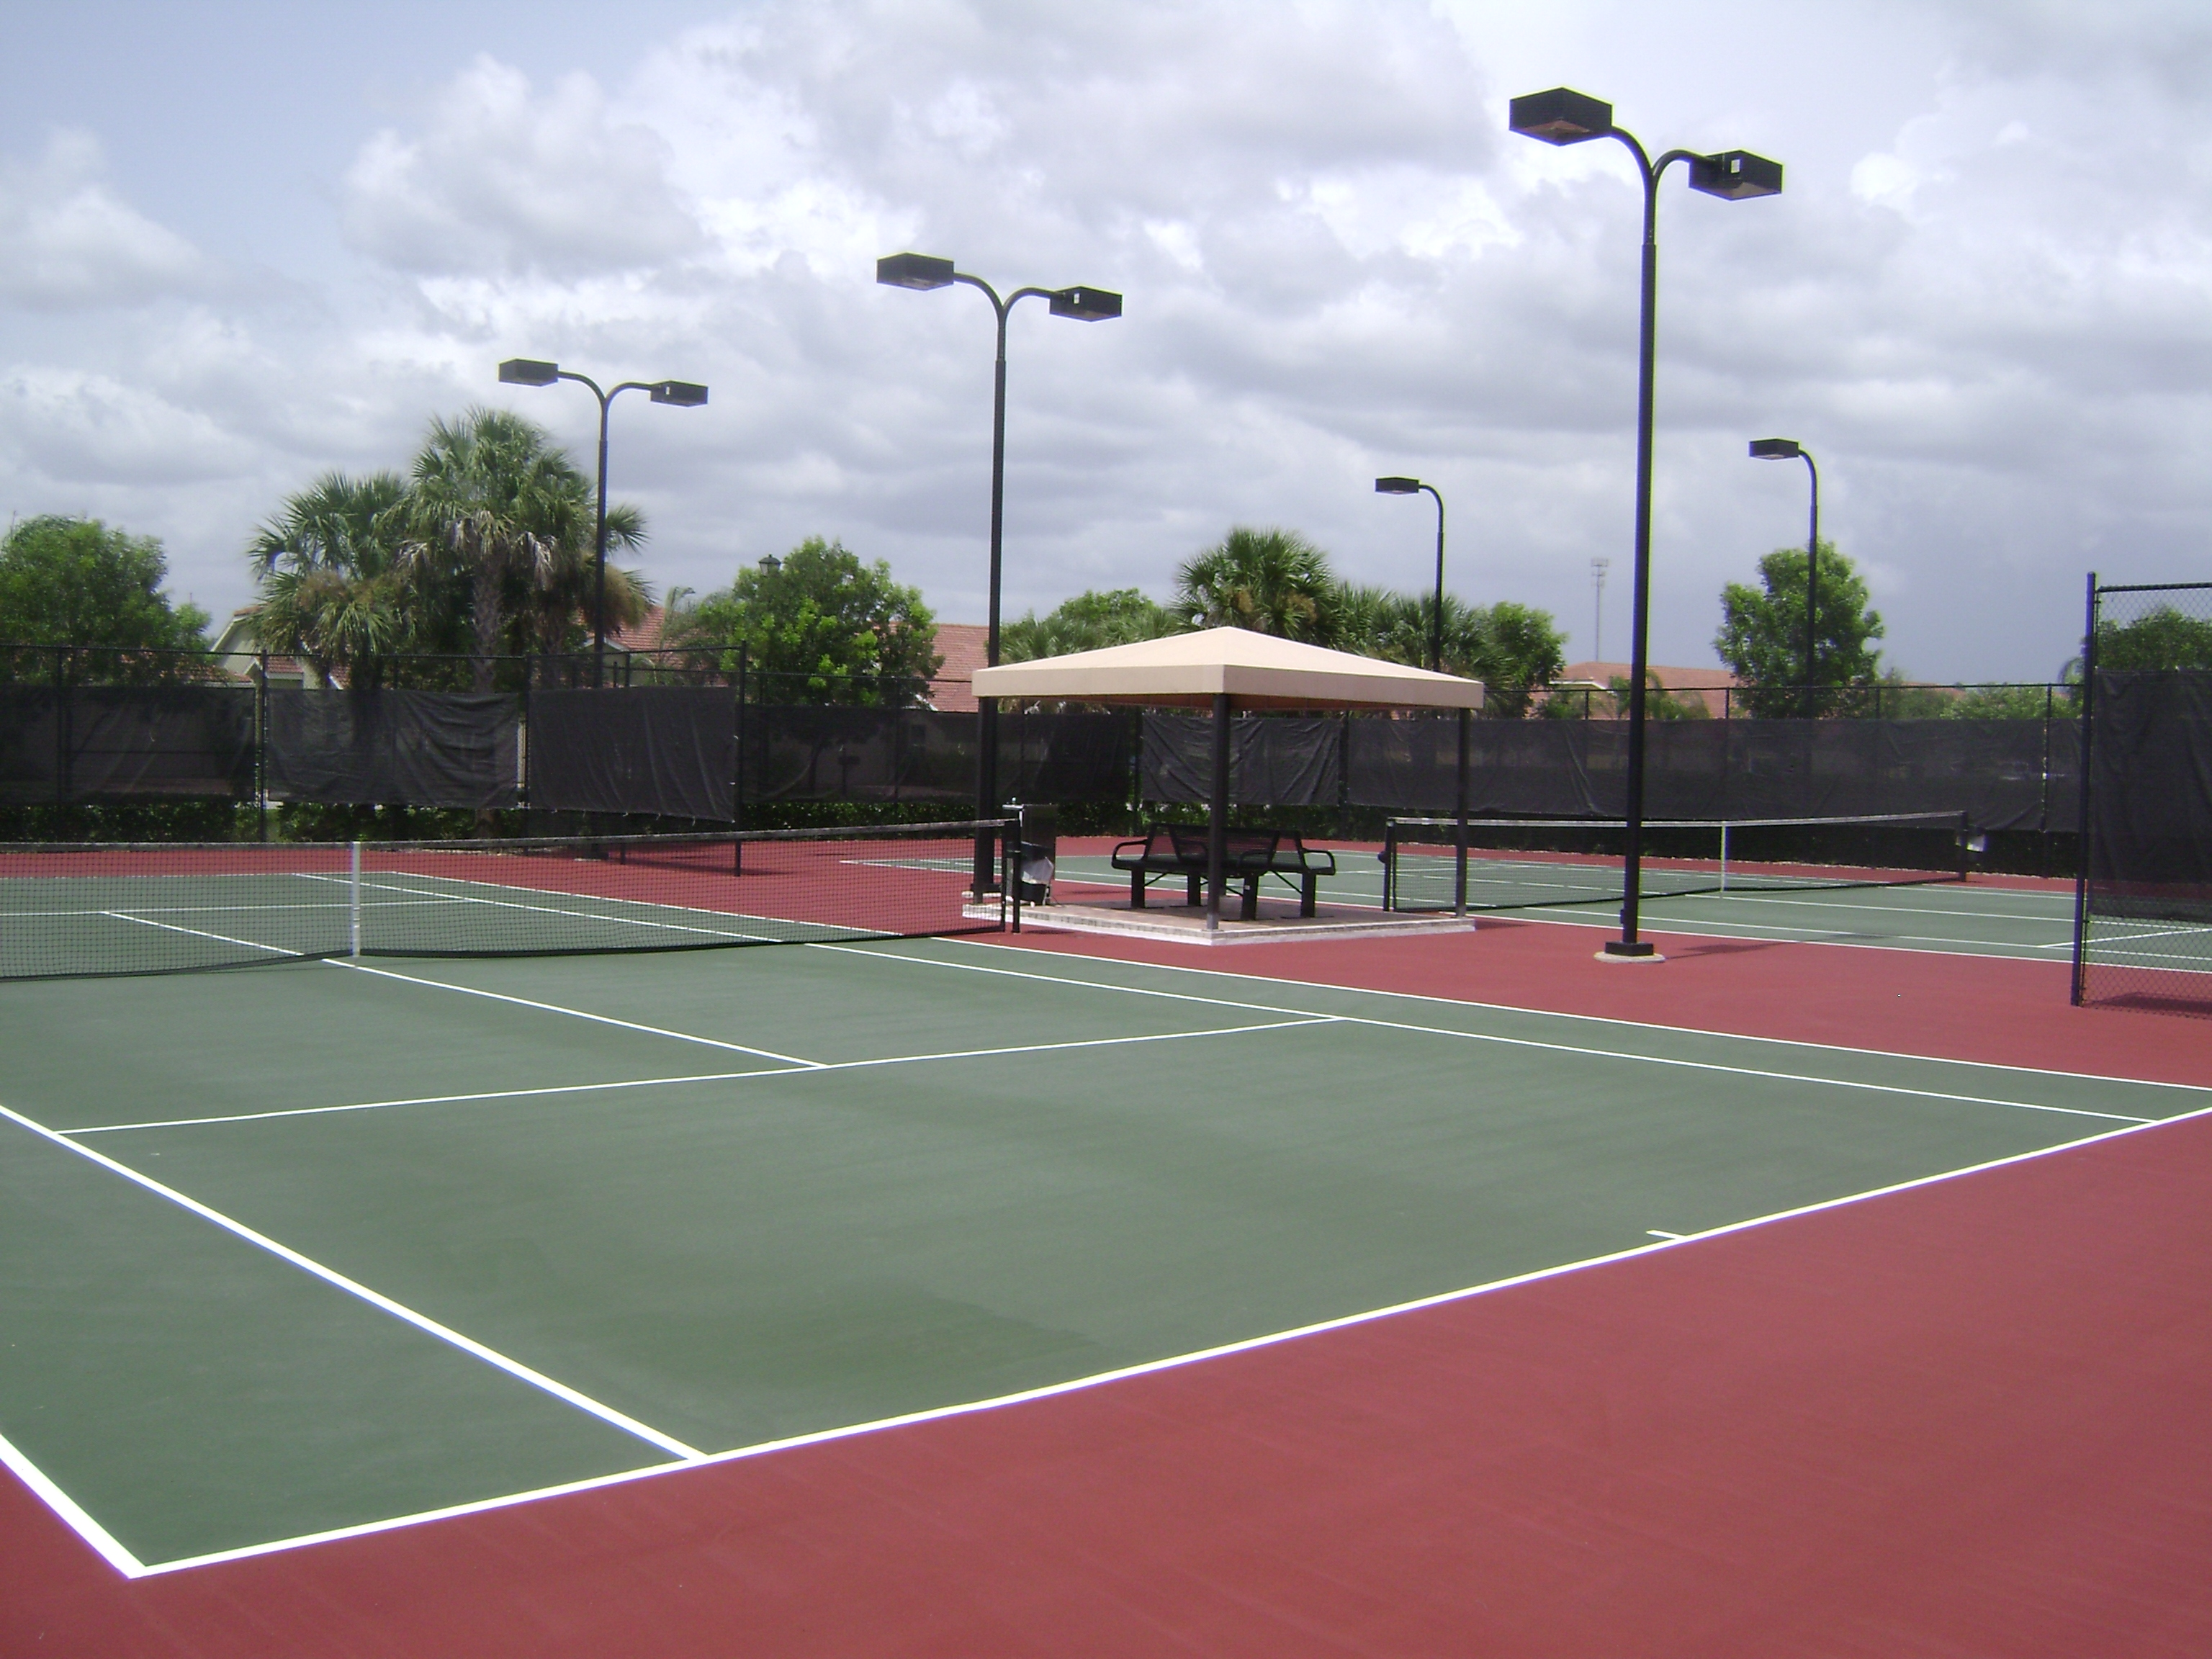 Tennis court at Tuscany Cove in Naples, Florida.